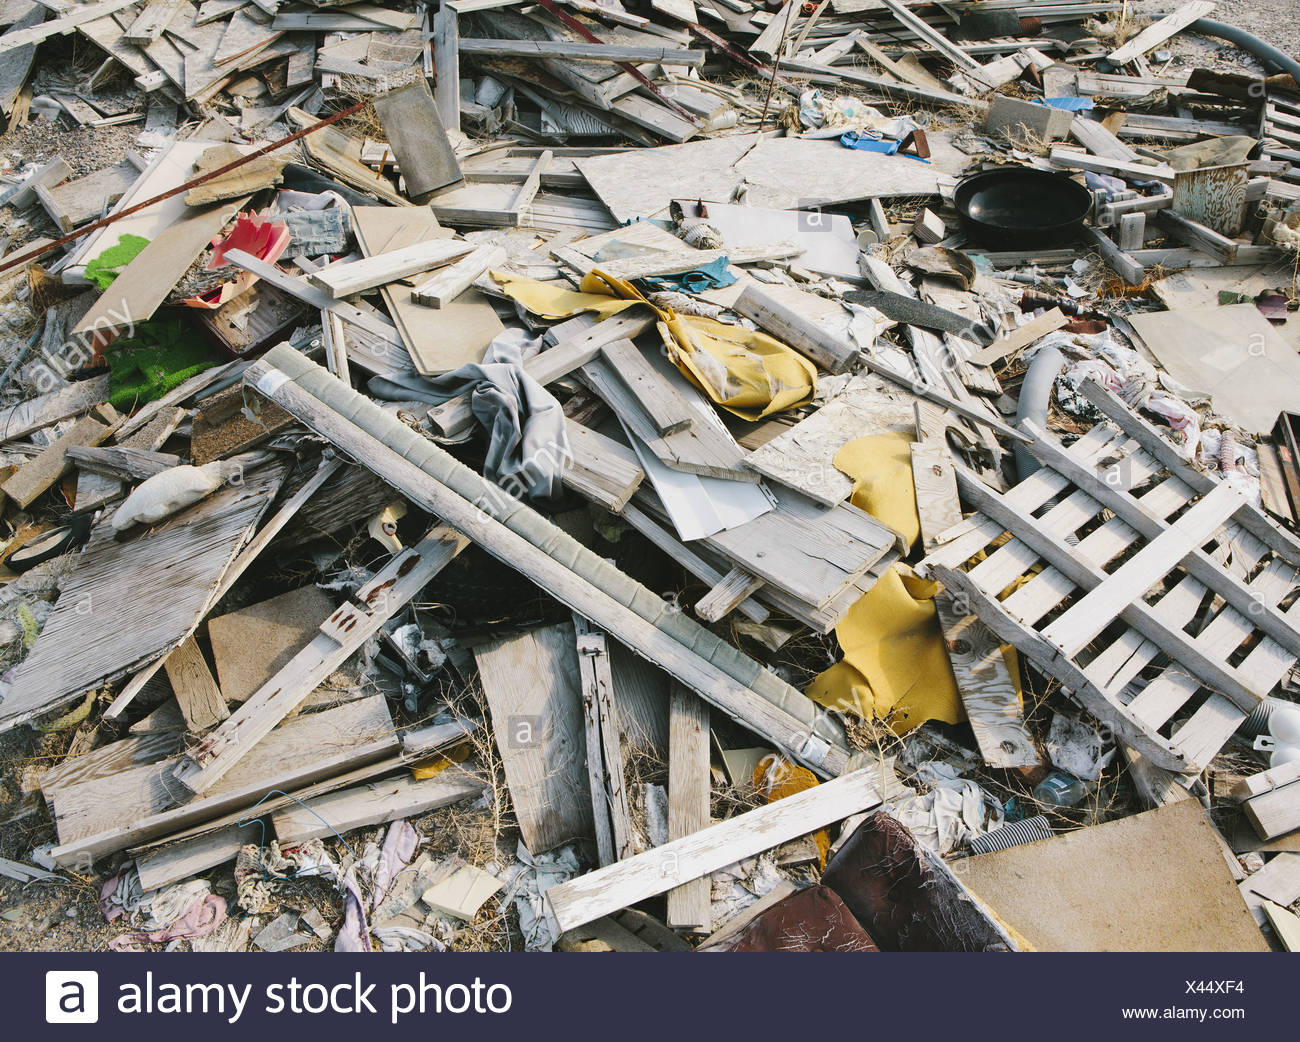 Utah USA heap of garbage discarded items domestic waste - Stock Image